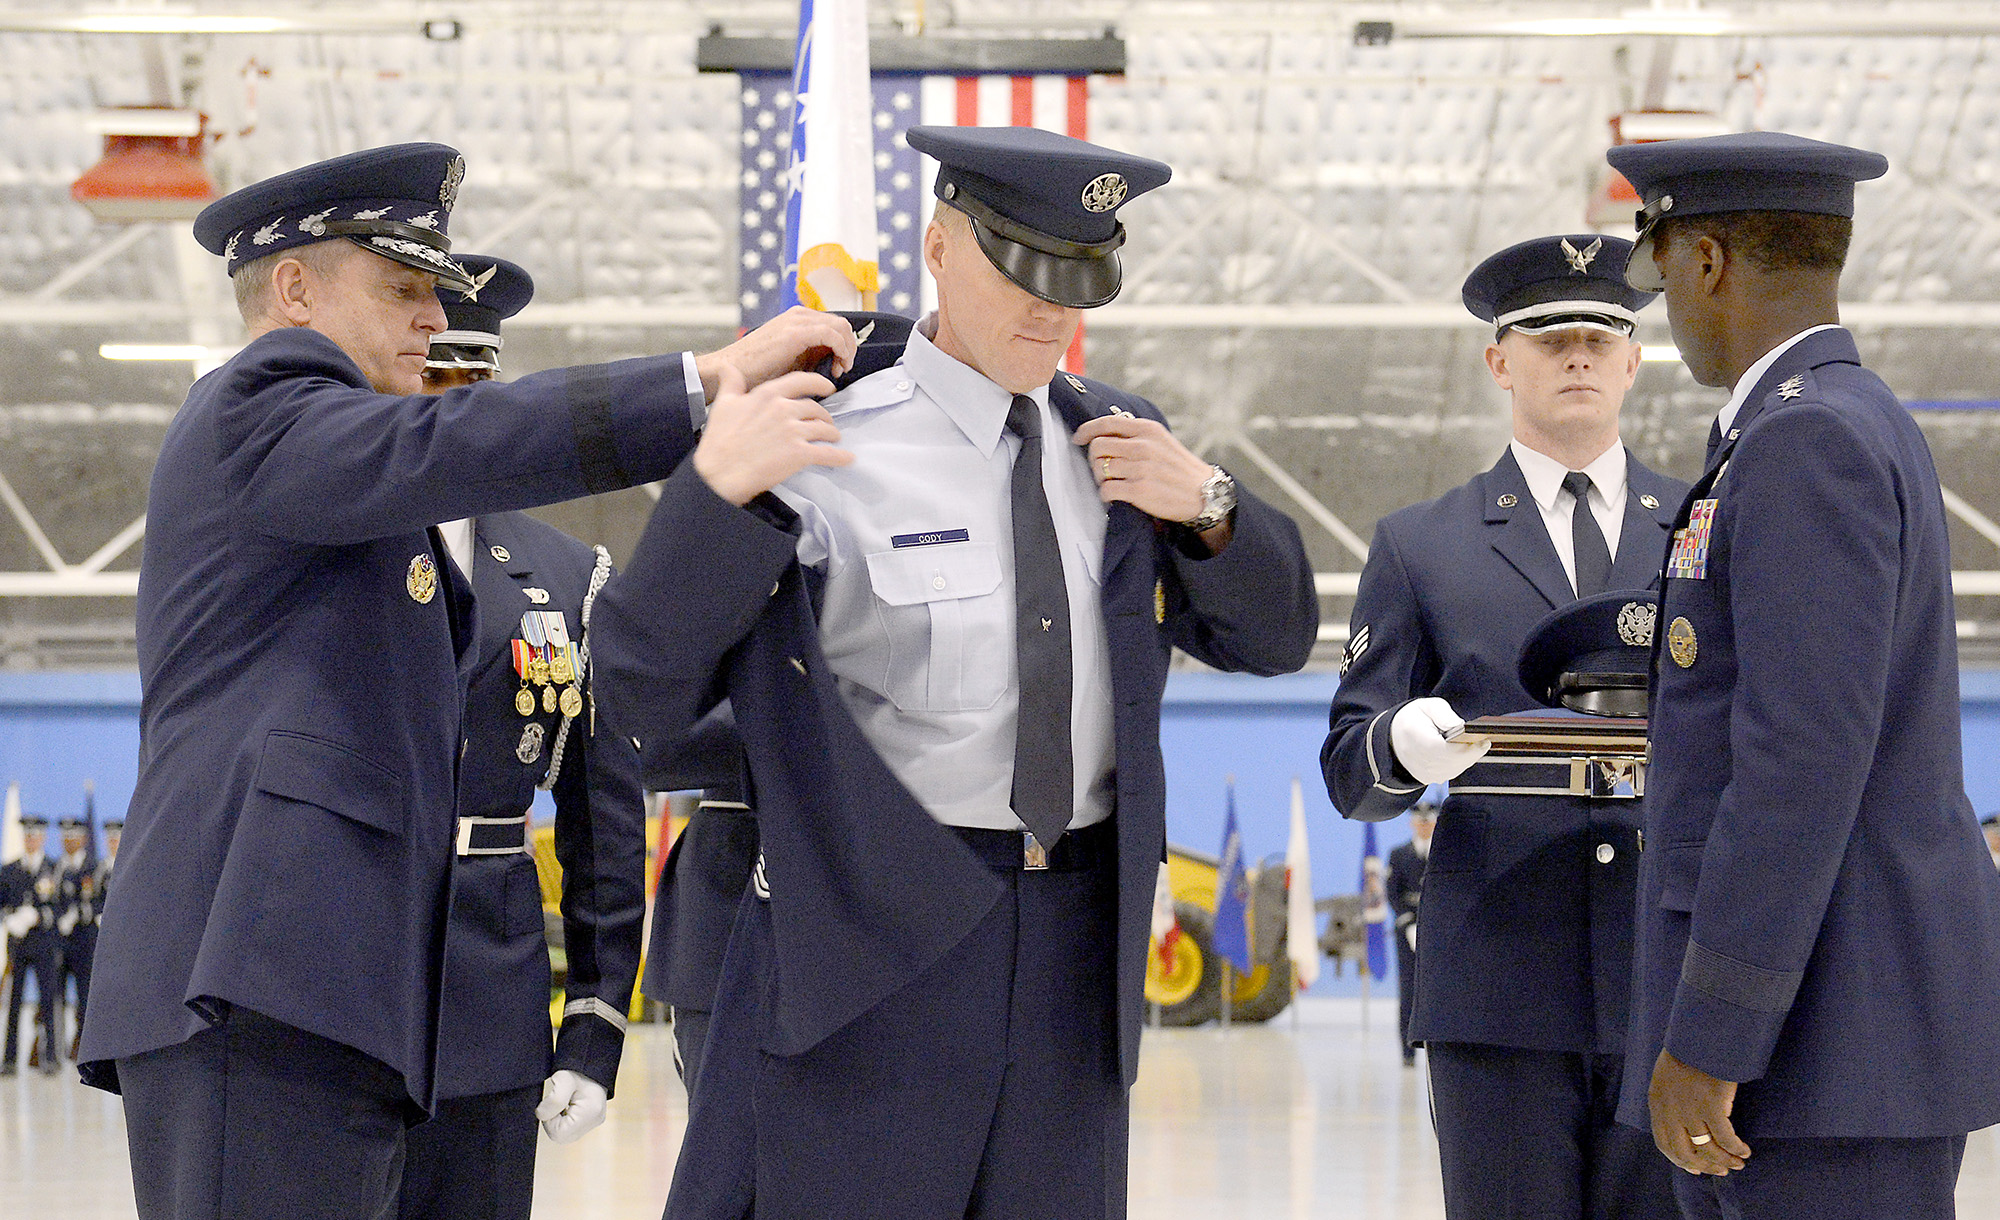 Airman in service dress pictures